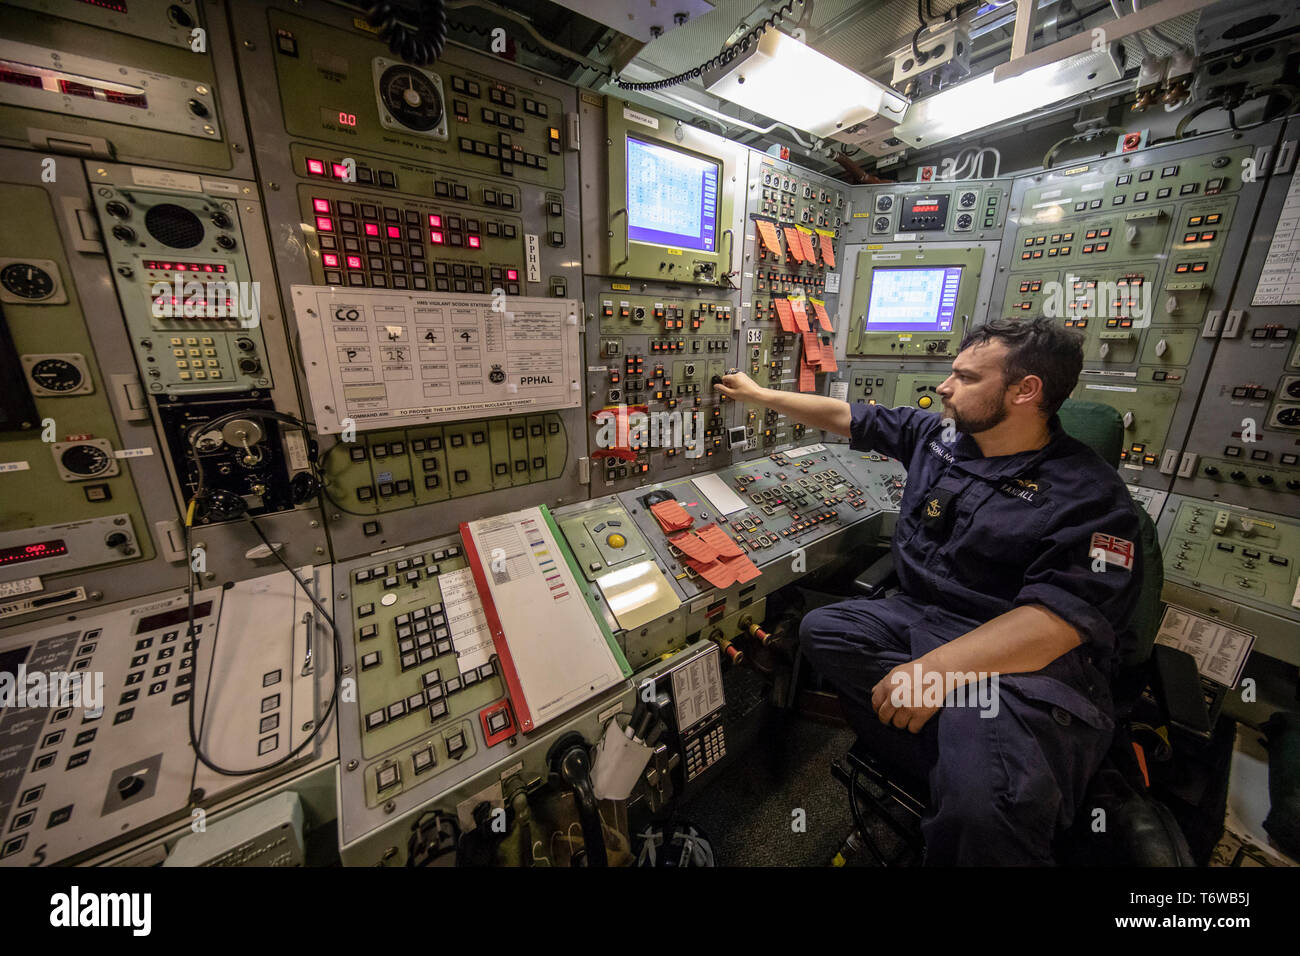 Embargoed to 0001 Friday May 3 Leading Engineering Technician Chris Randall onboard HMS Vigilant at HM Naval Base Clyde, Faslane, the Vanguard-class submarine carries the UK's Trident nuclear deterrent. - Stock Image